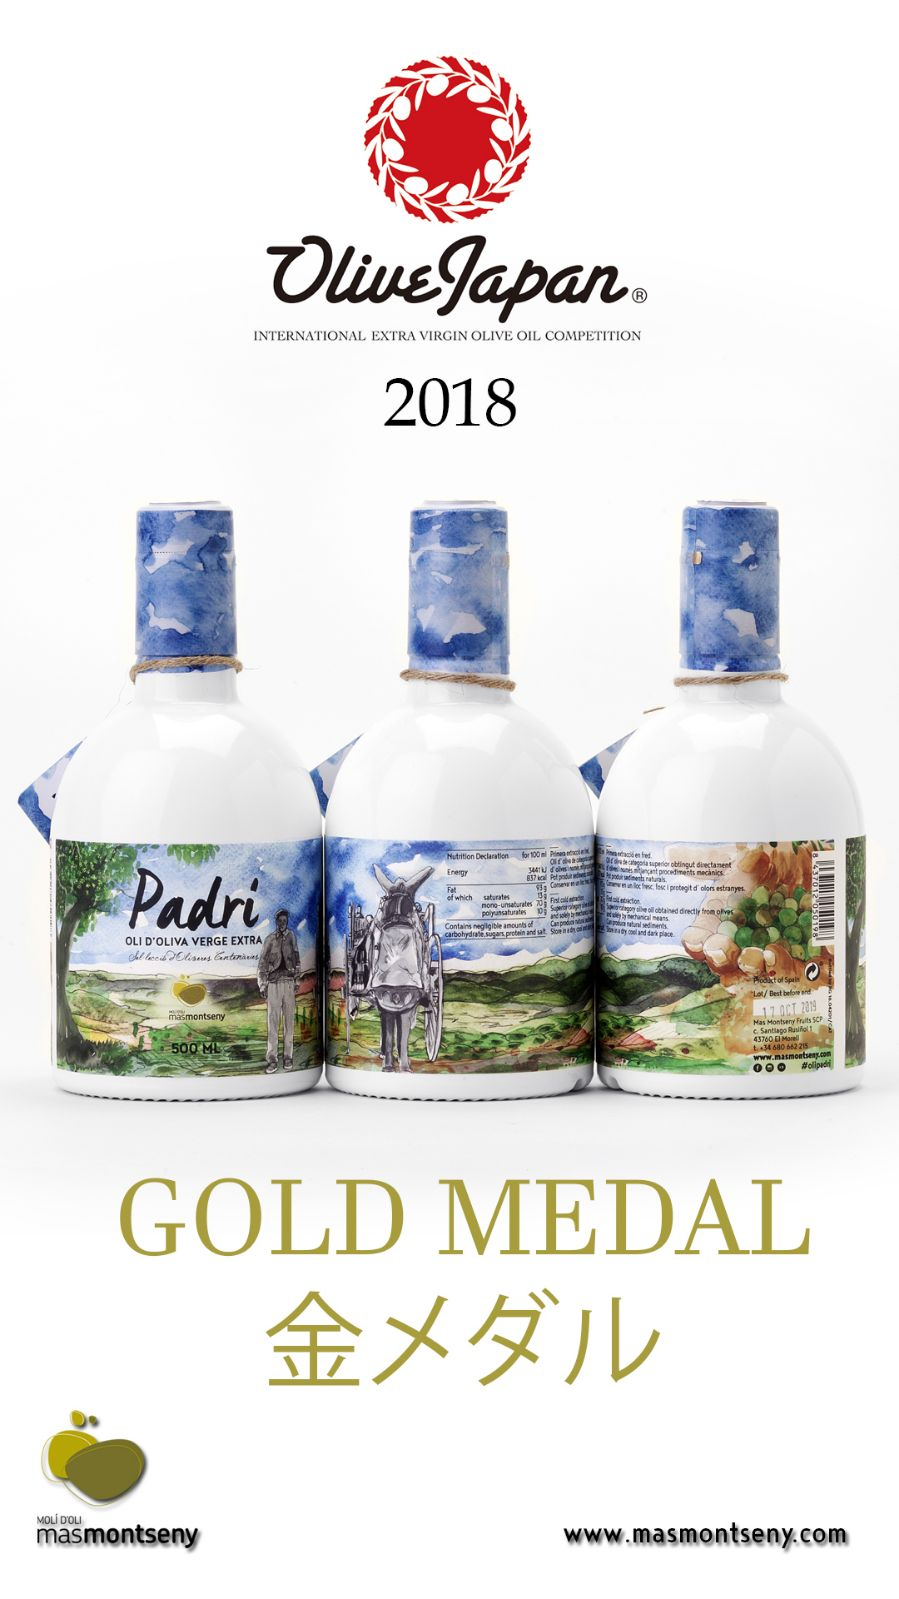 Olive Japan 2018 Gold Padrí ExtraVirgin Olive Oil Centenarian Arbequina